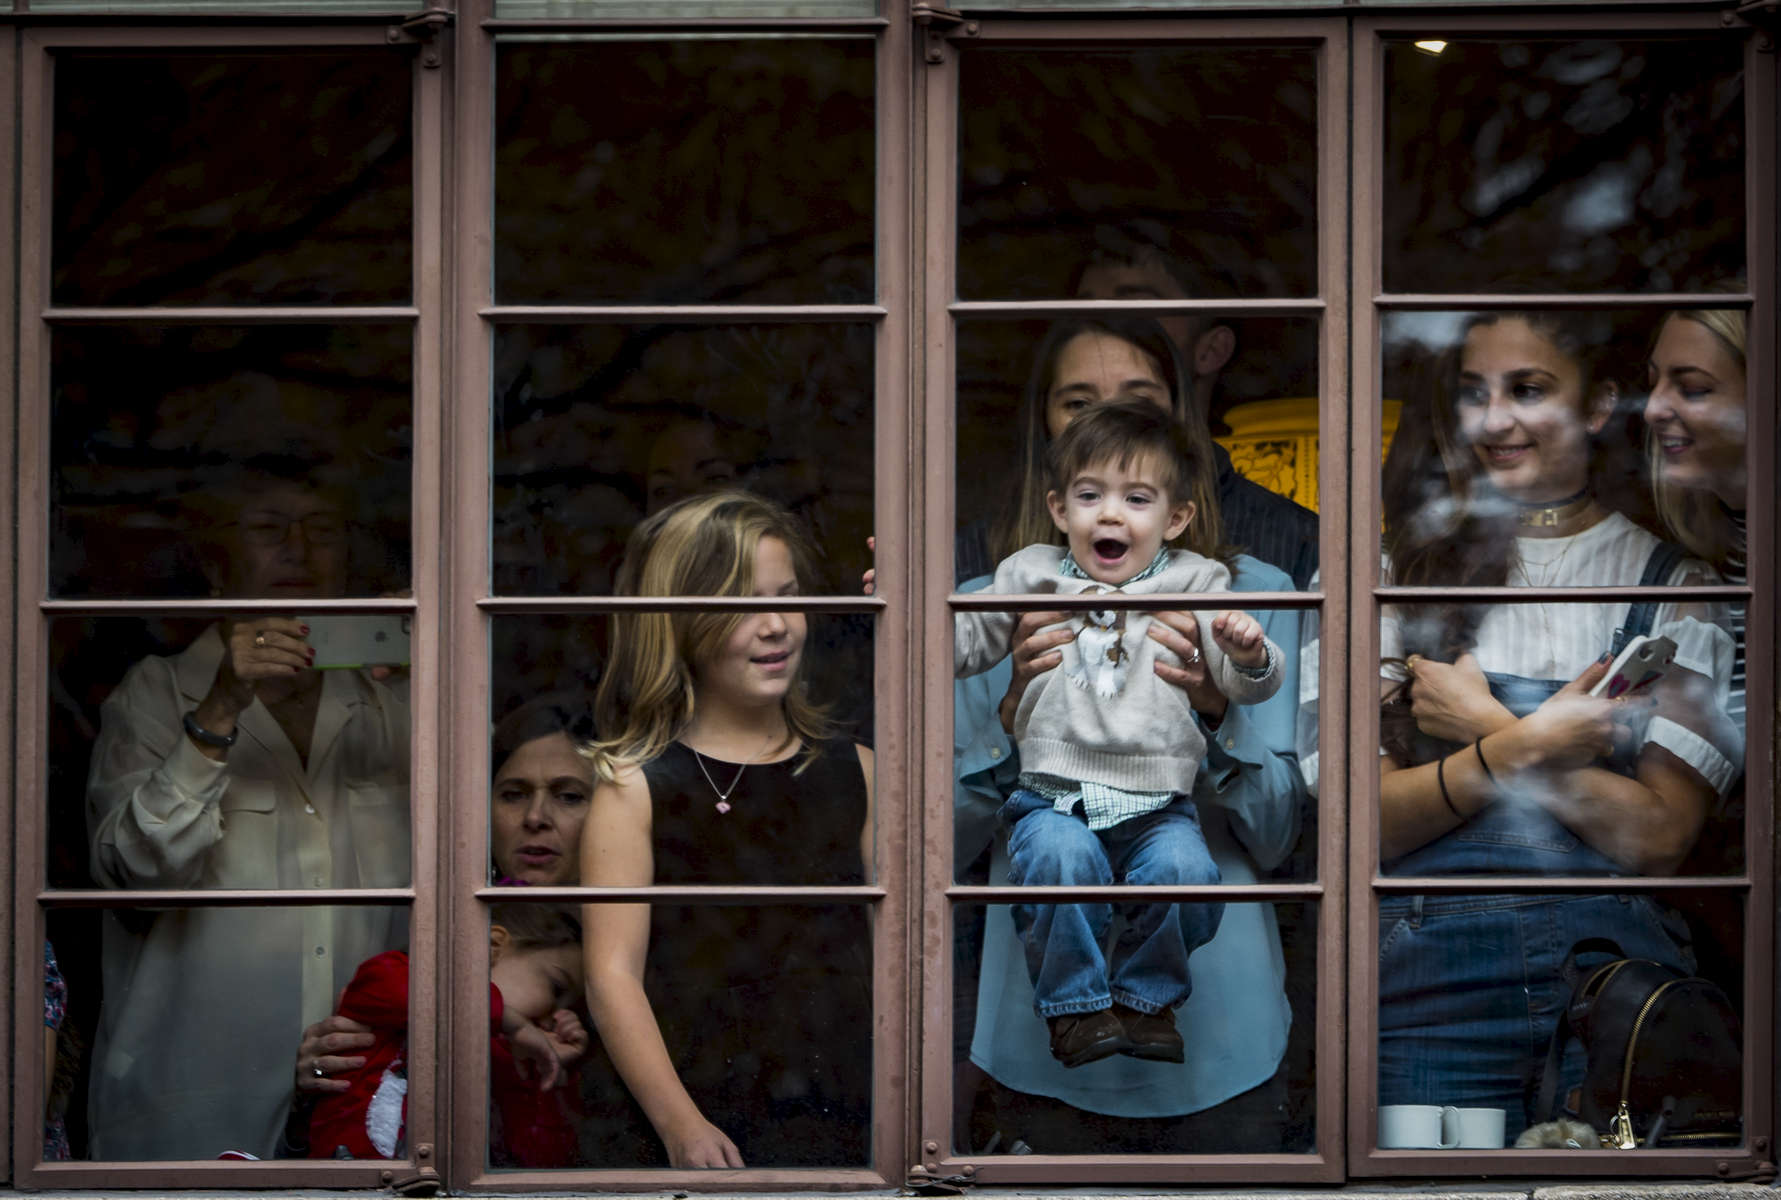 Spectators enjoy watching Macy's Thanksgiving Day Parade 2016 from their window, as participants pass along Central Park West in Manhattan on Thursday, November 24, 2016. (Anthony DelMundo/New York Daily News)